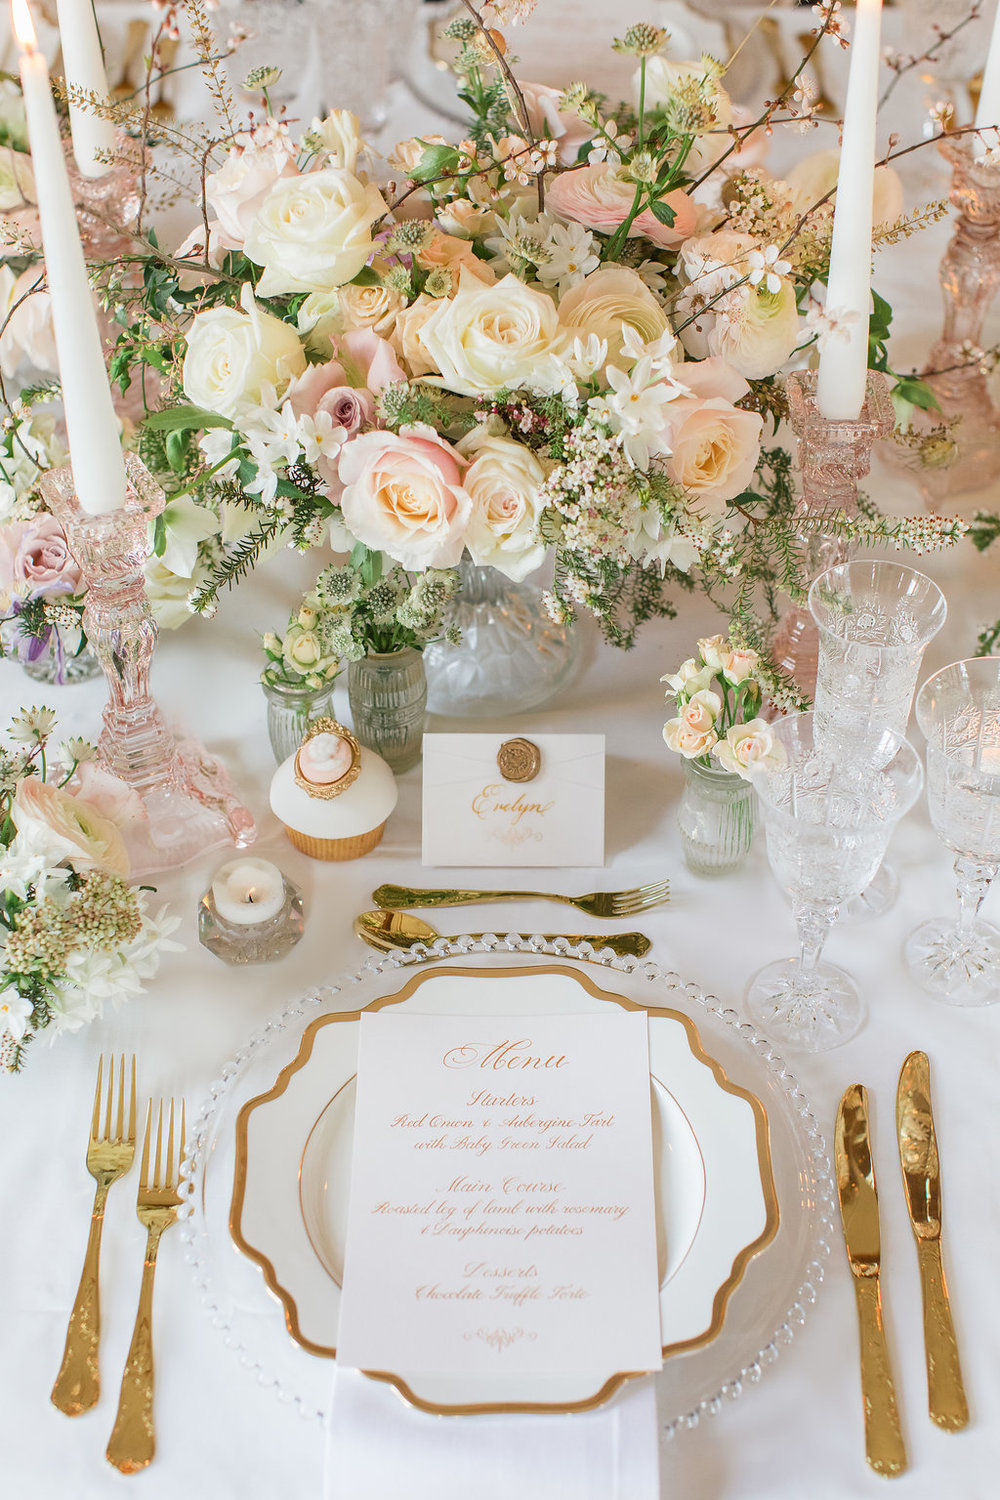 The Timeless Stylist-Elegant and Romantic Dinner Party Styling-Decadent White & Gold Tableware